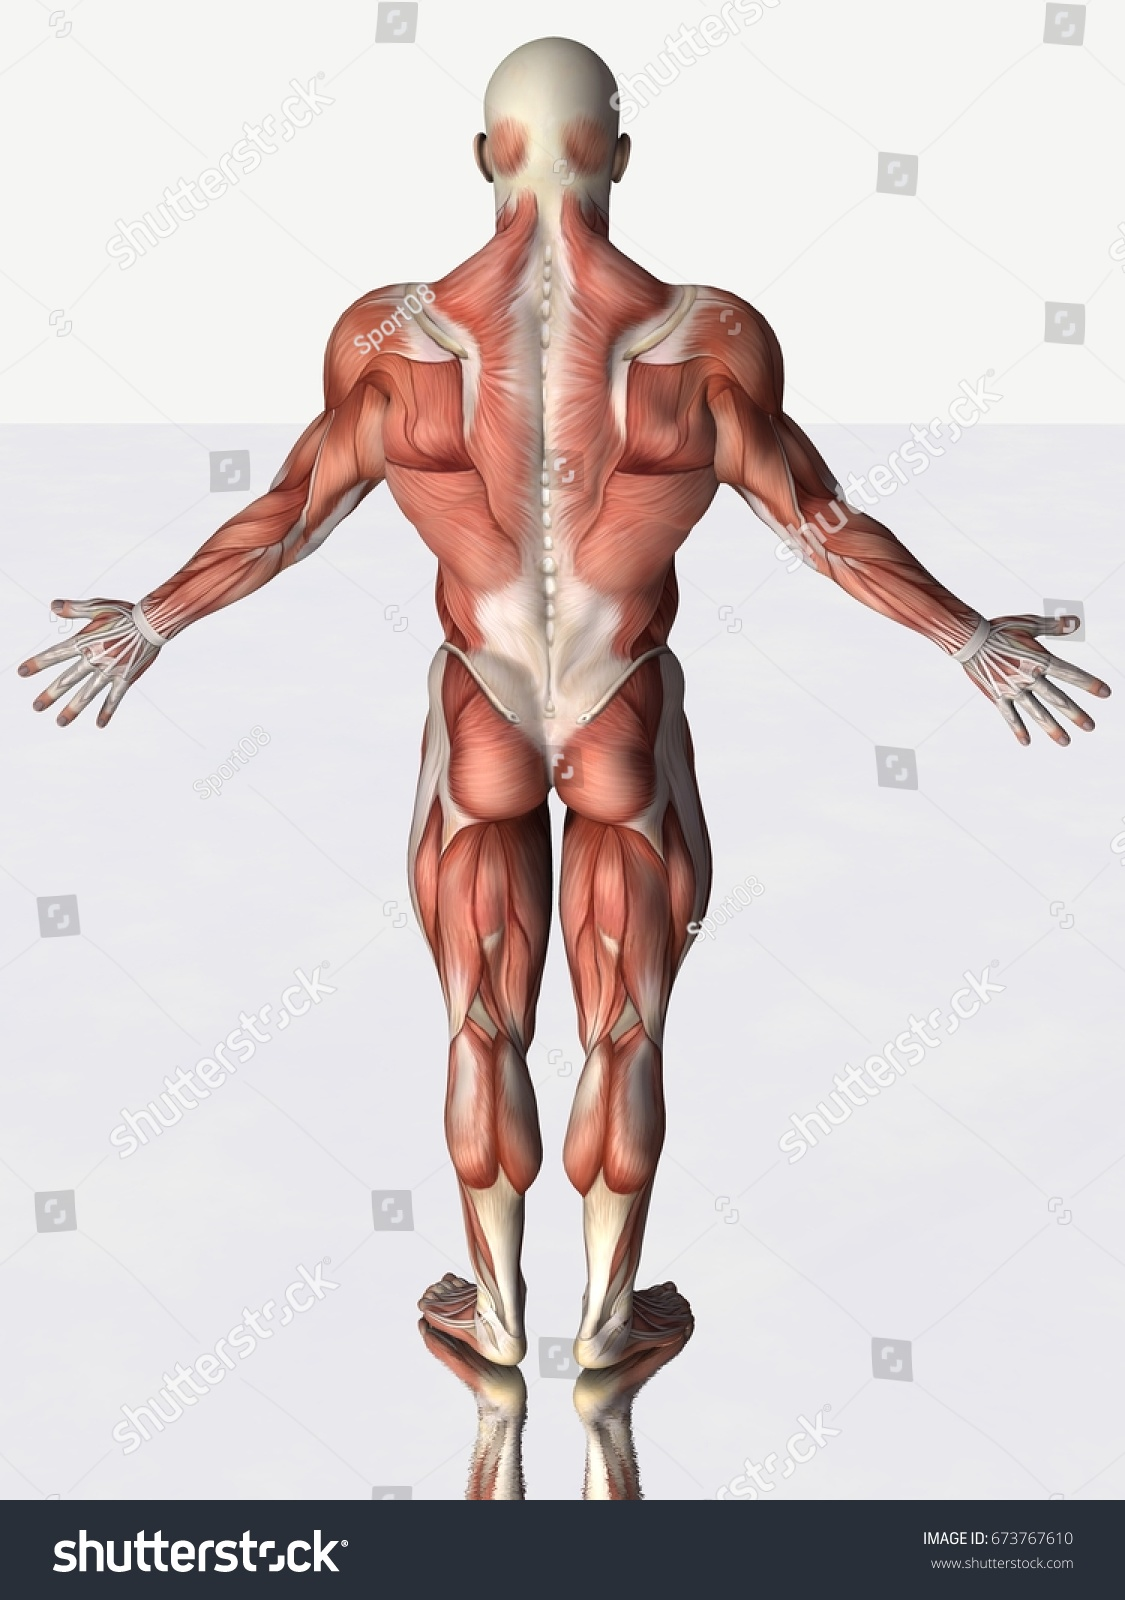 Back View 3 D Rendering Strong Anatomical Stock Illustration ...